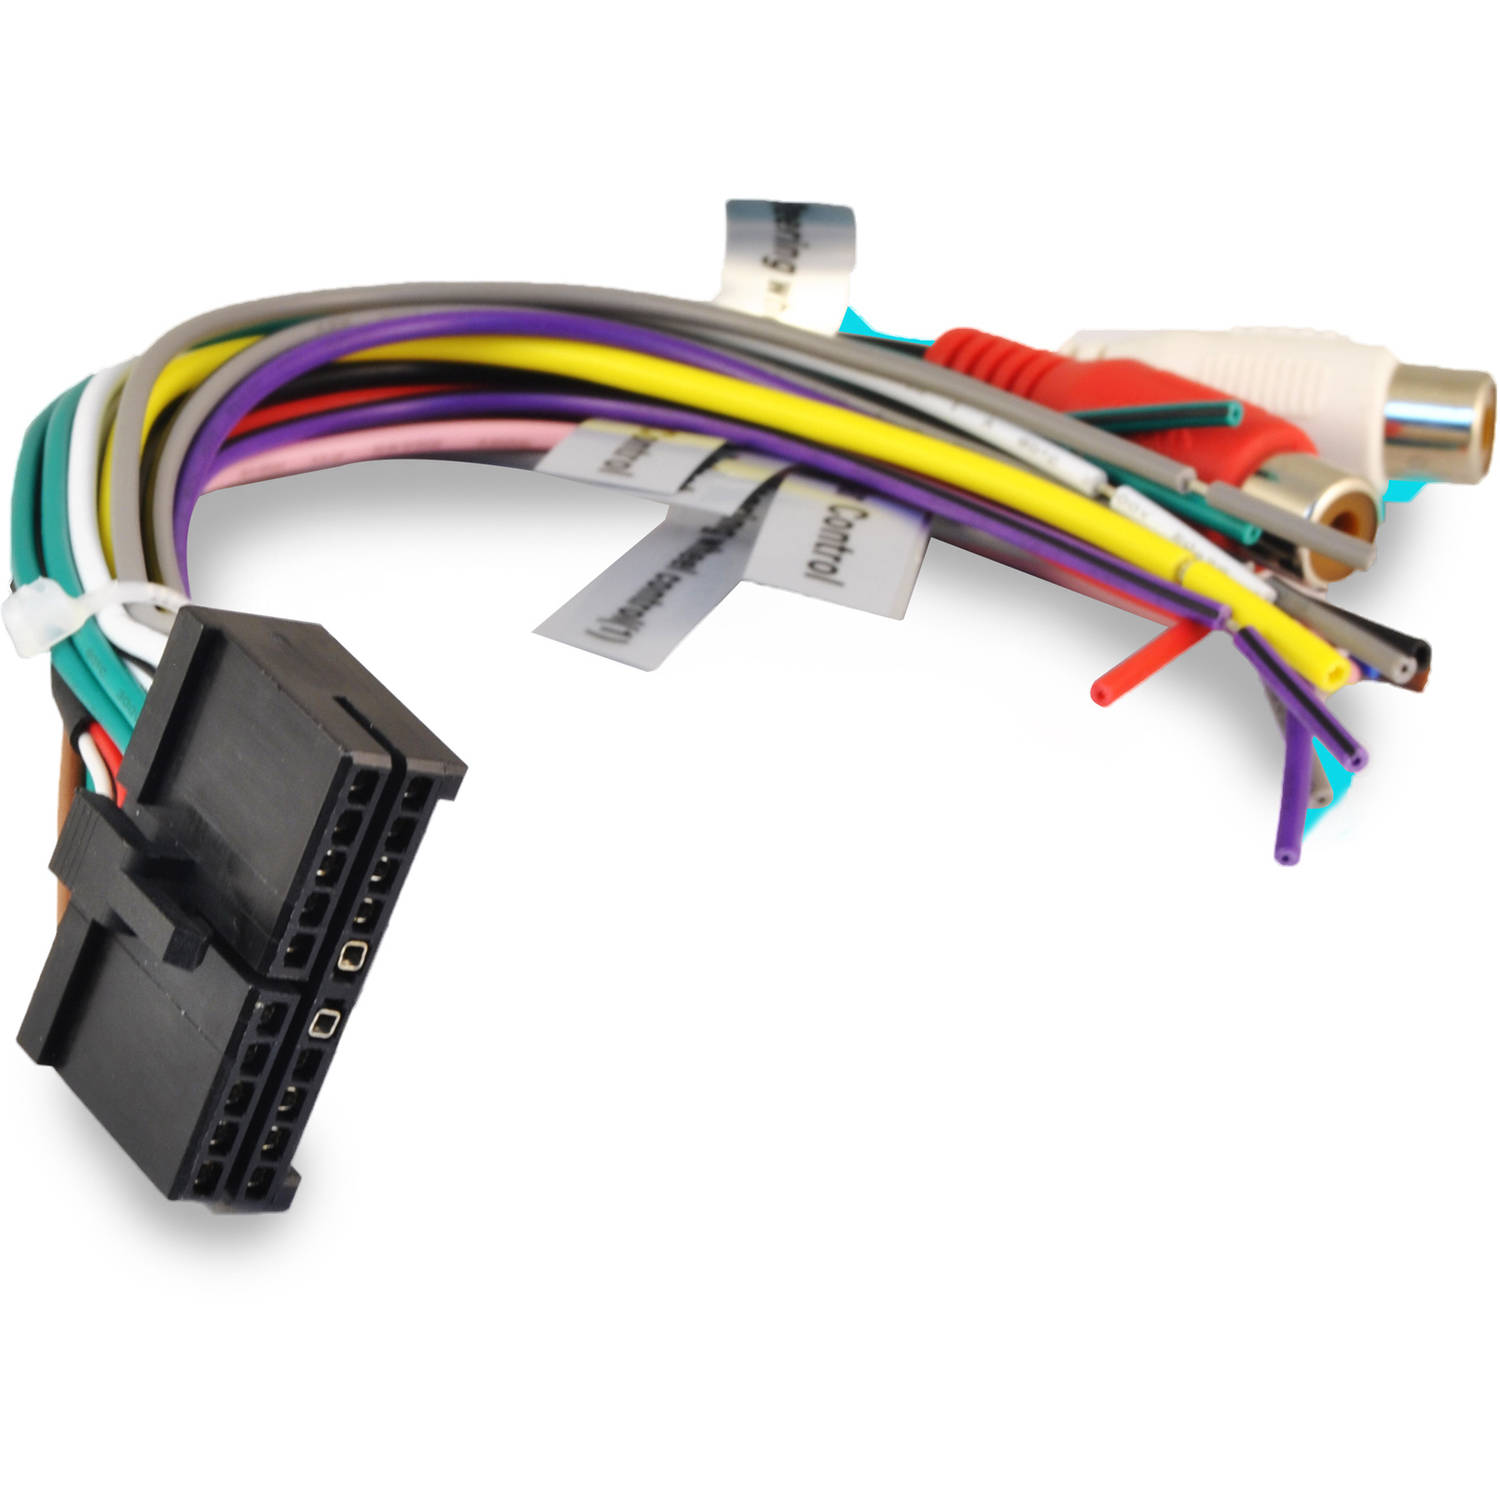 7 And 8 Pin Wiring Harness For Am Fm Radio 42 Diagram Jeep 358d76ad 71e6 4743 91ea 60d35a6a9887 1c441e37d40917c1d315cf64c200a73e0 Xo Vision X358